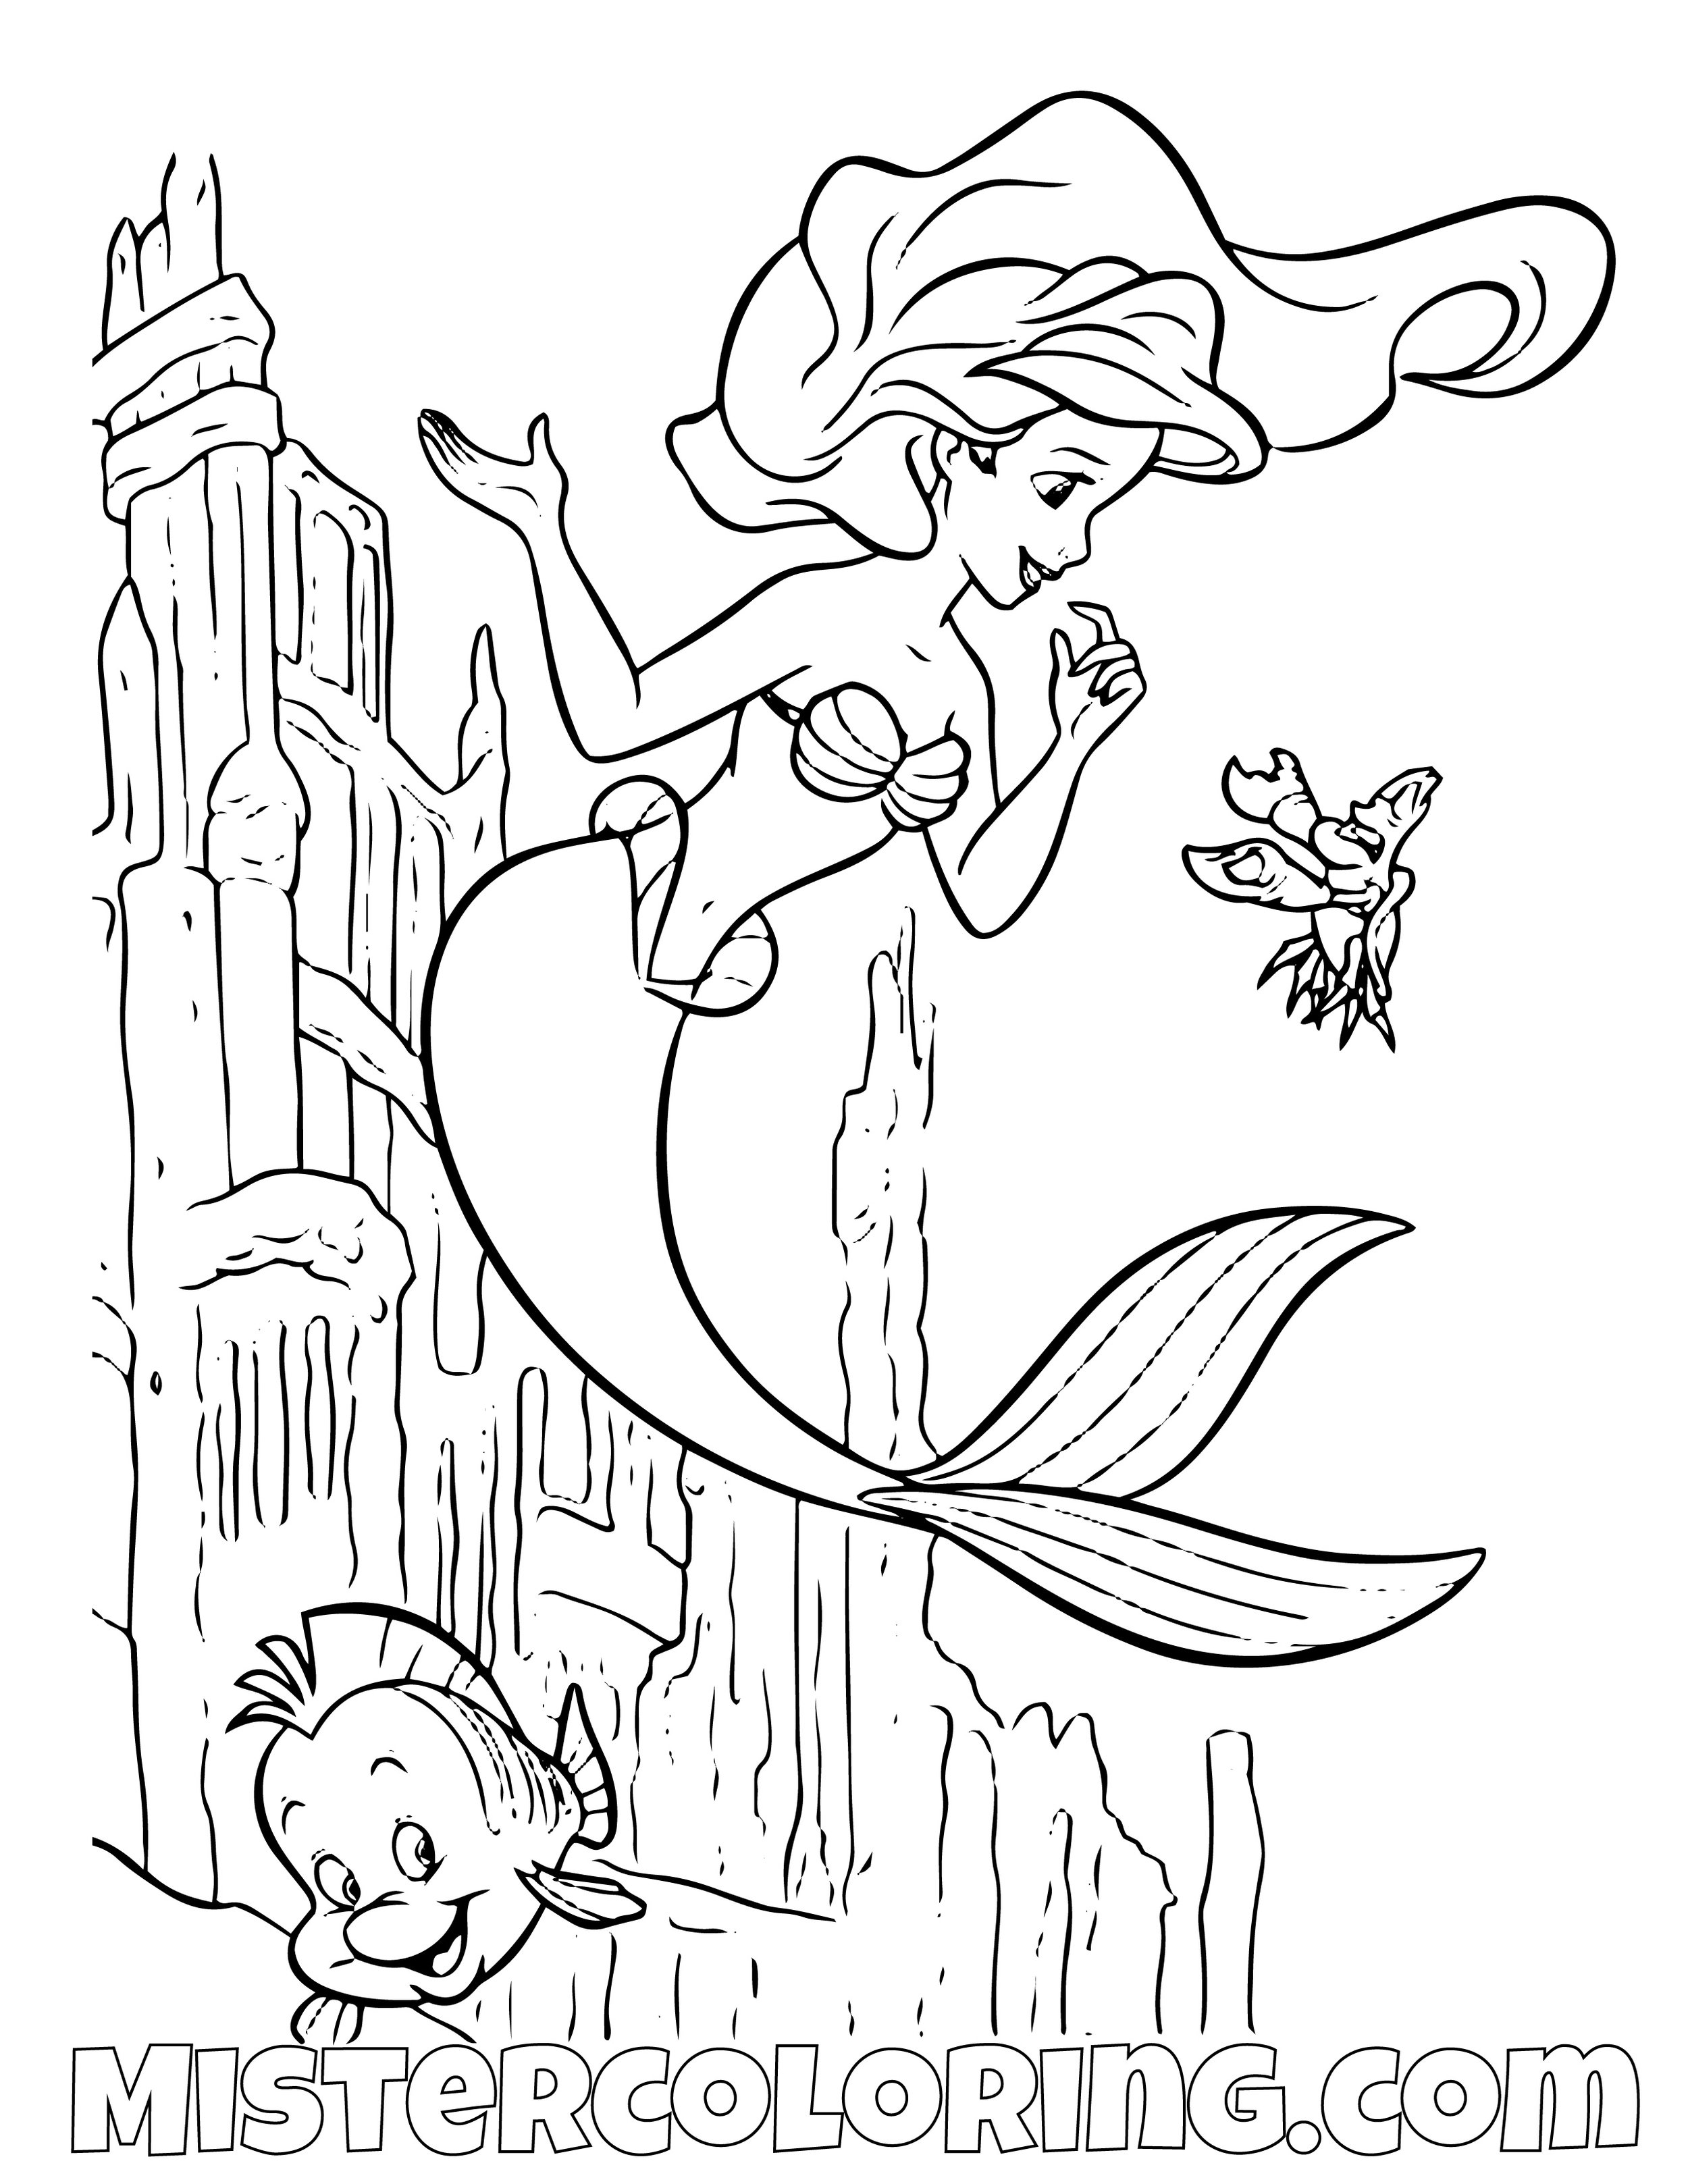 The Little Mermaid Coloring Page | Find Coloring | Mermaid coloring pages, Ariel  coloring pages, Mermaid coloring | 1294x1000